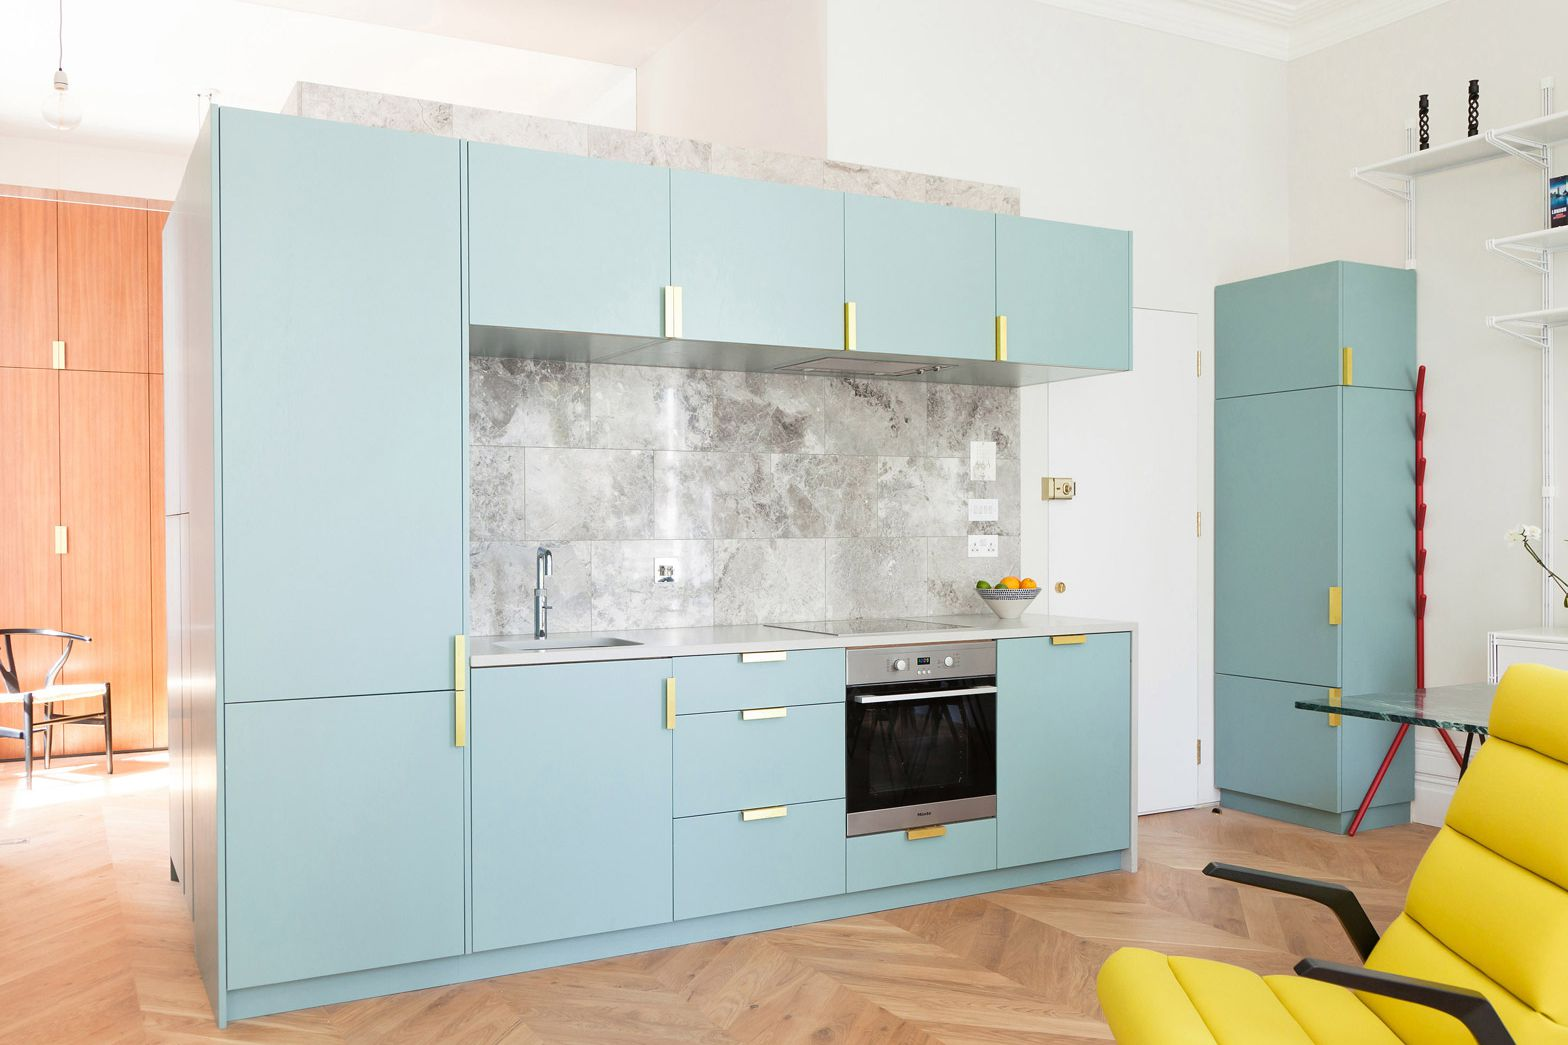 Pale blue cabinets with gold handles